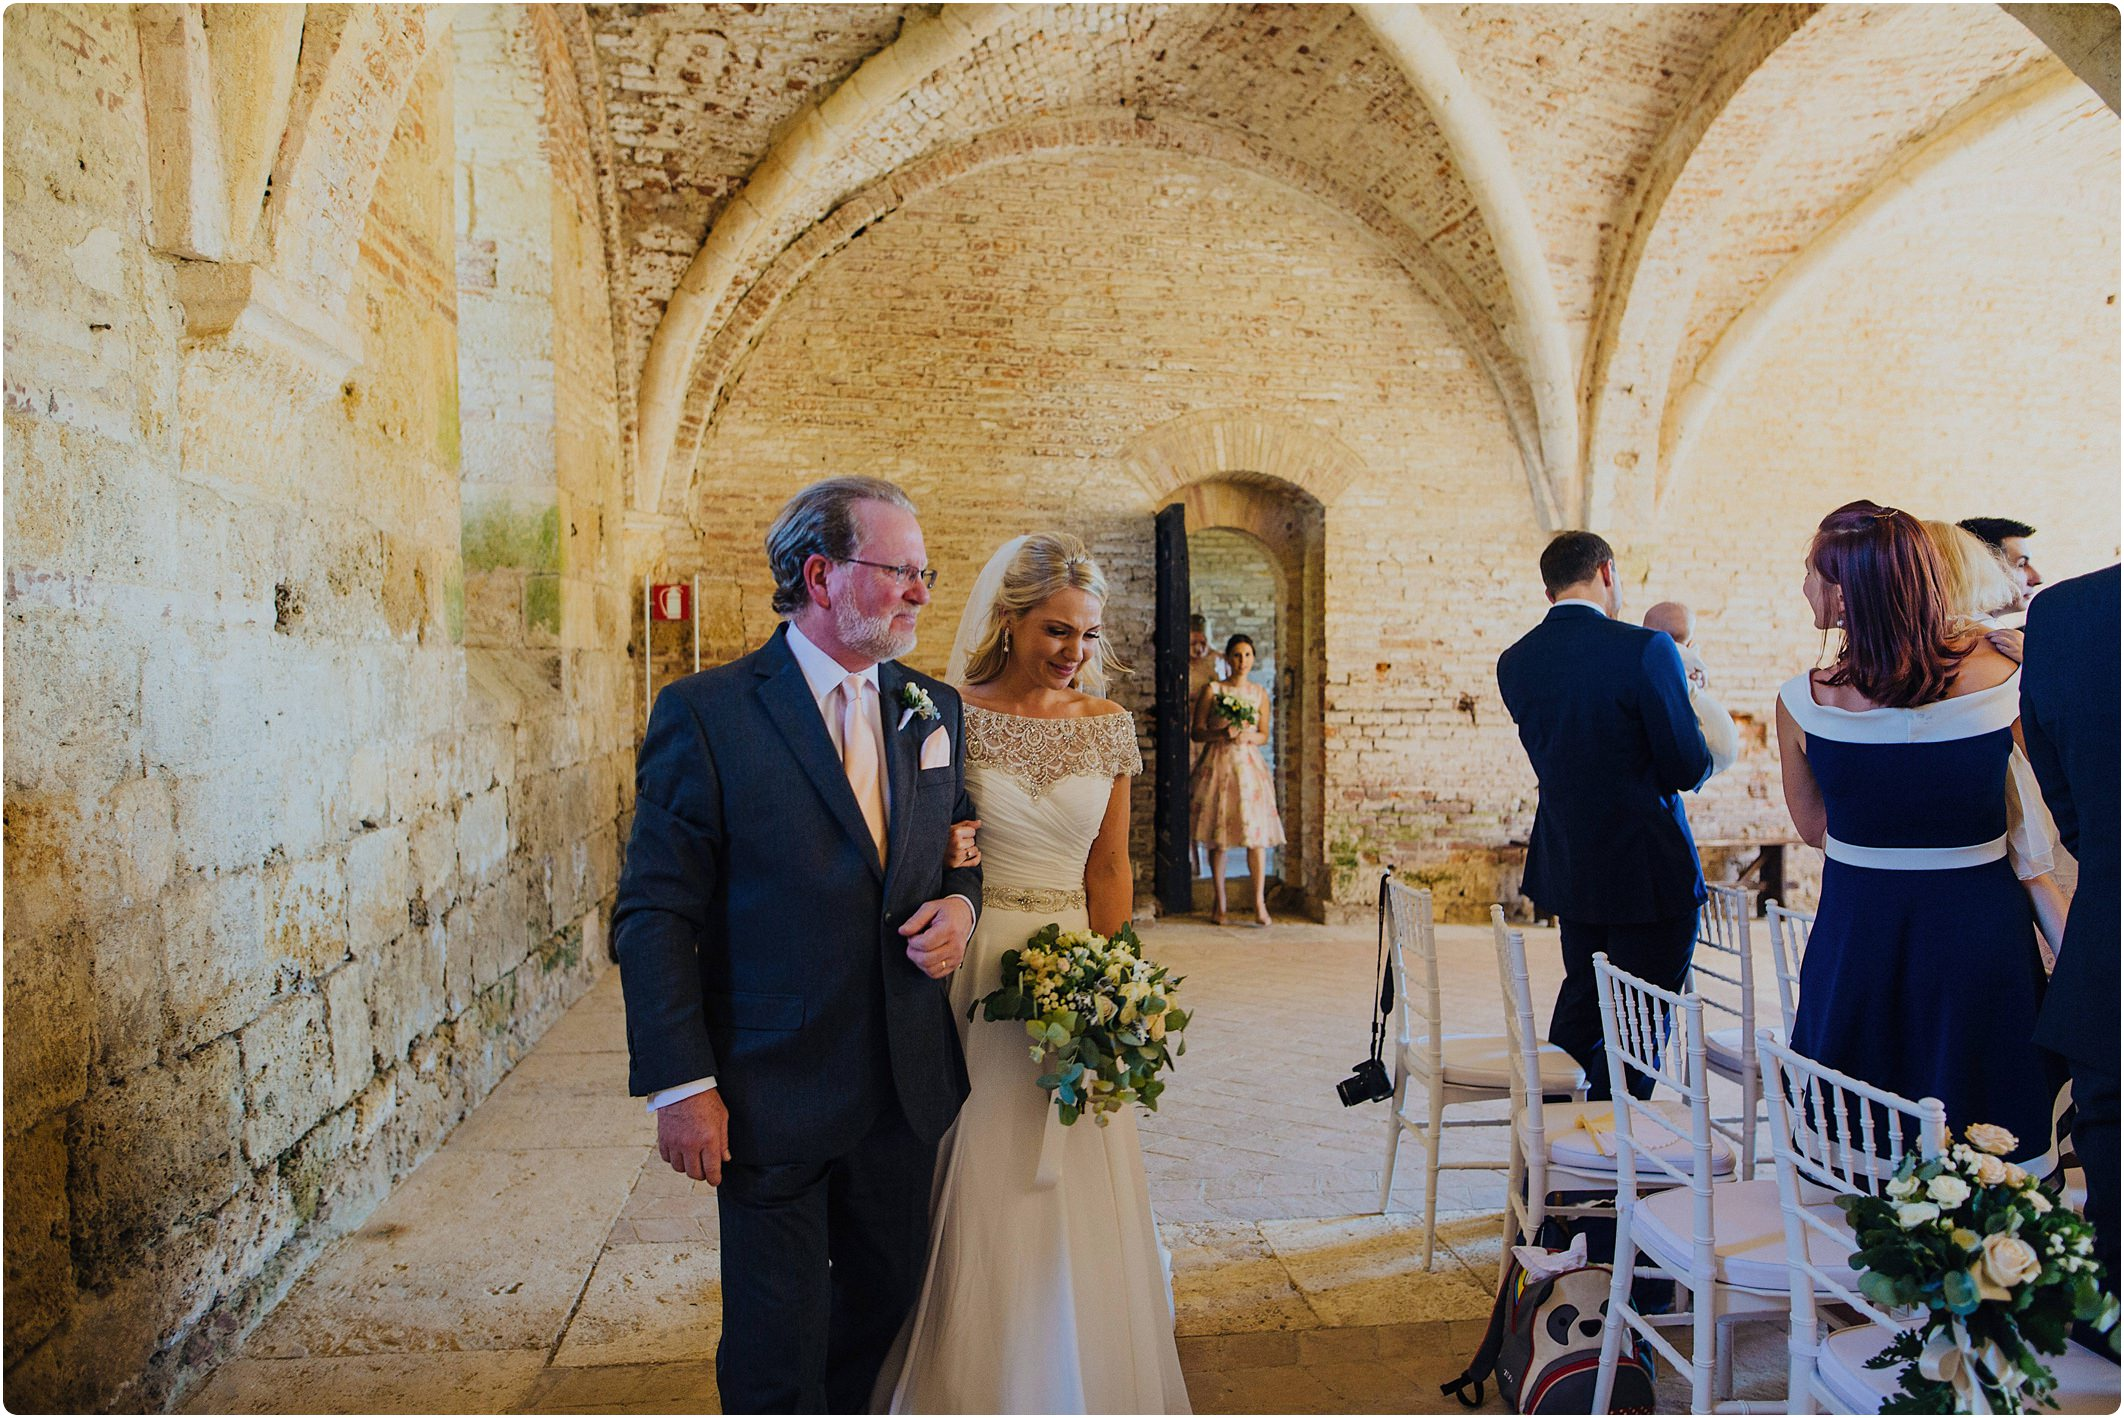 father walking bride down aisle at a san galgano abbey wedding